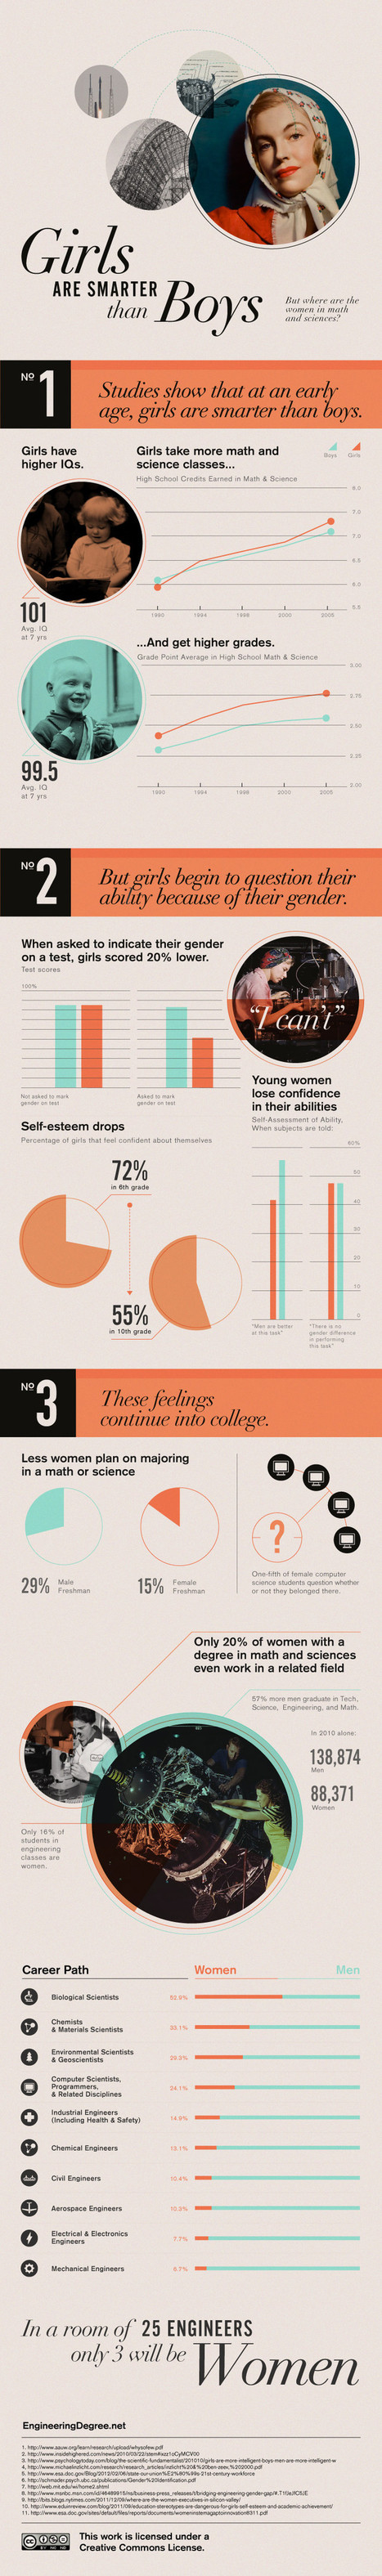 Case Study: Do you think Girls Are Smarter Than Boys? Final Verdict | All Infographics | Outlaw Writing Infographics | Scoop.it